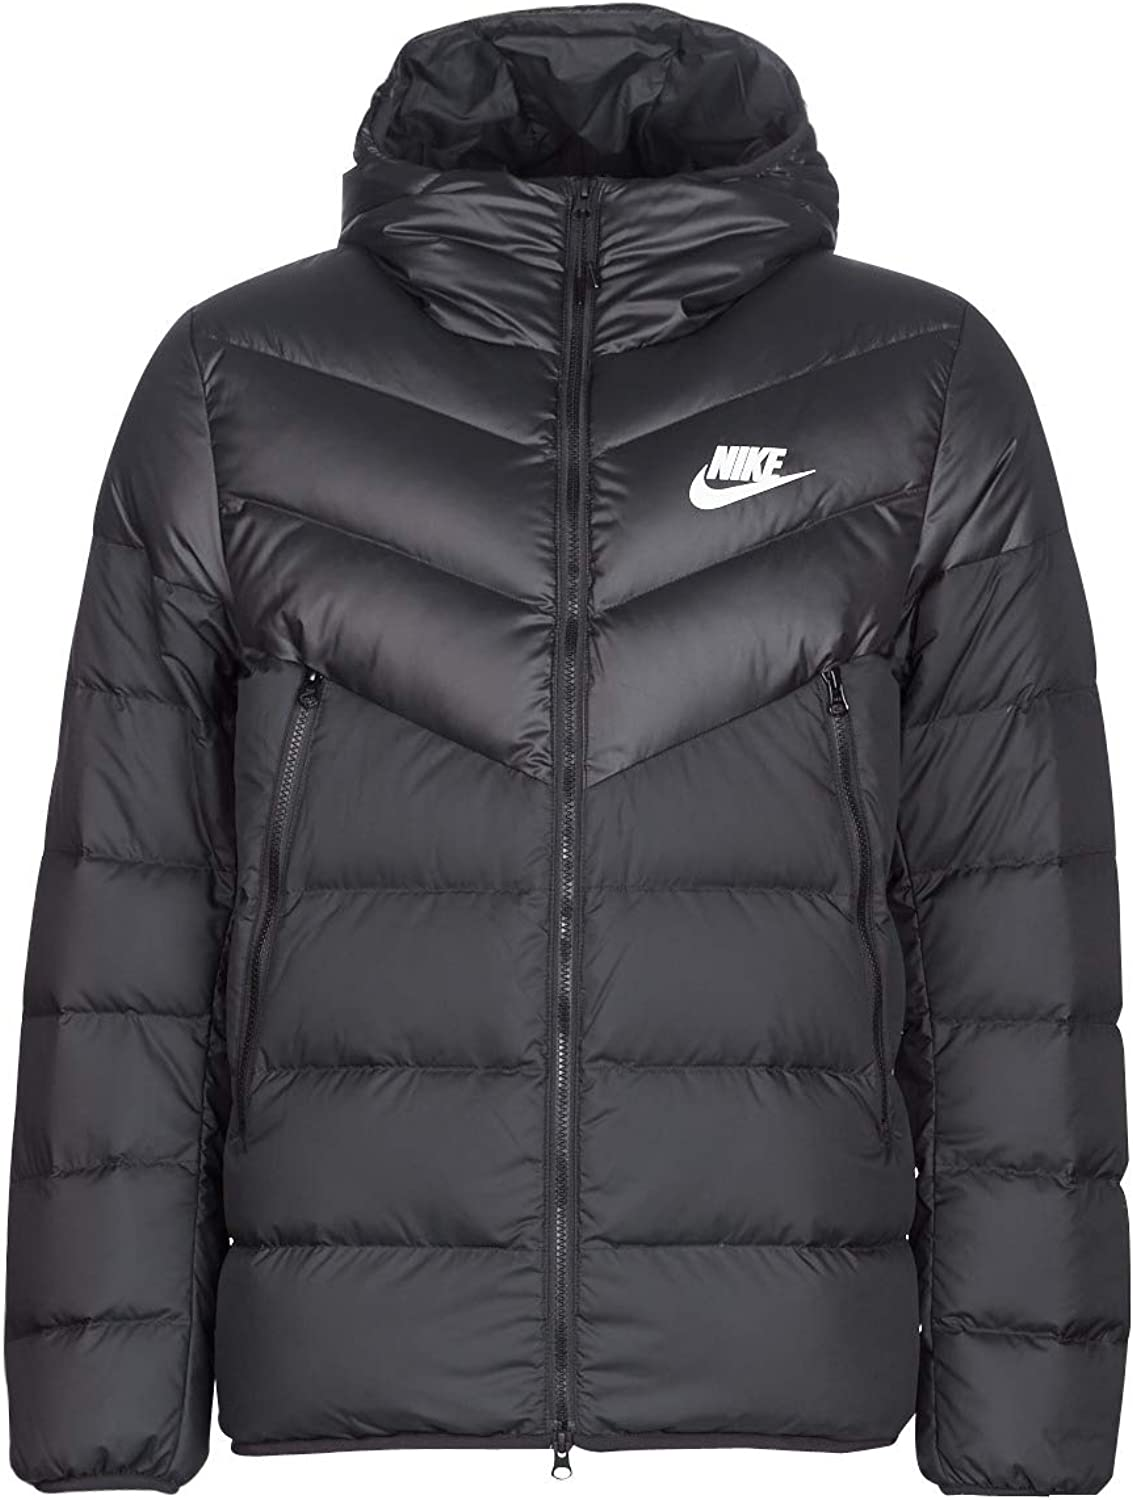 Nike Herren Down Fill Warmth Hd Jacke